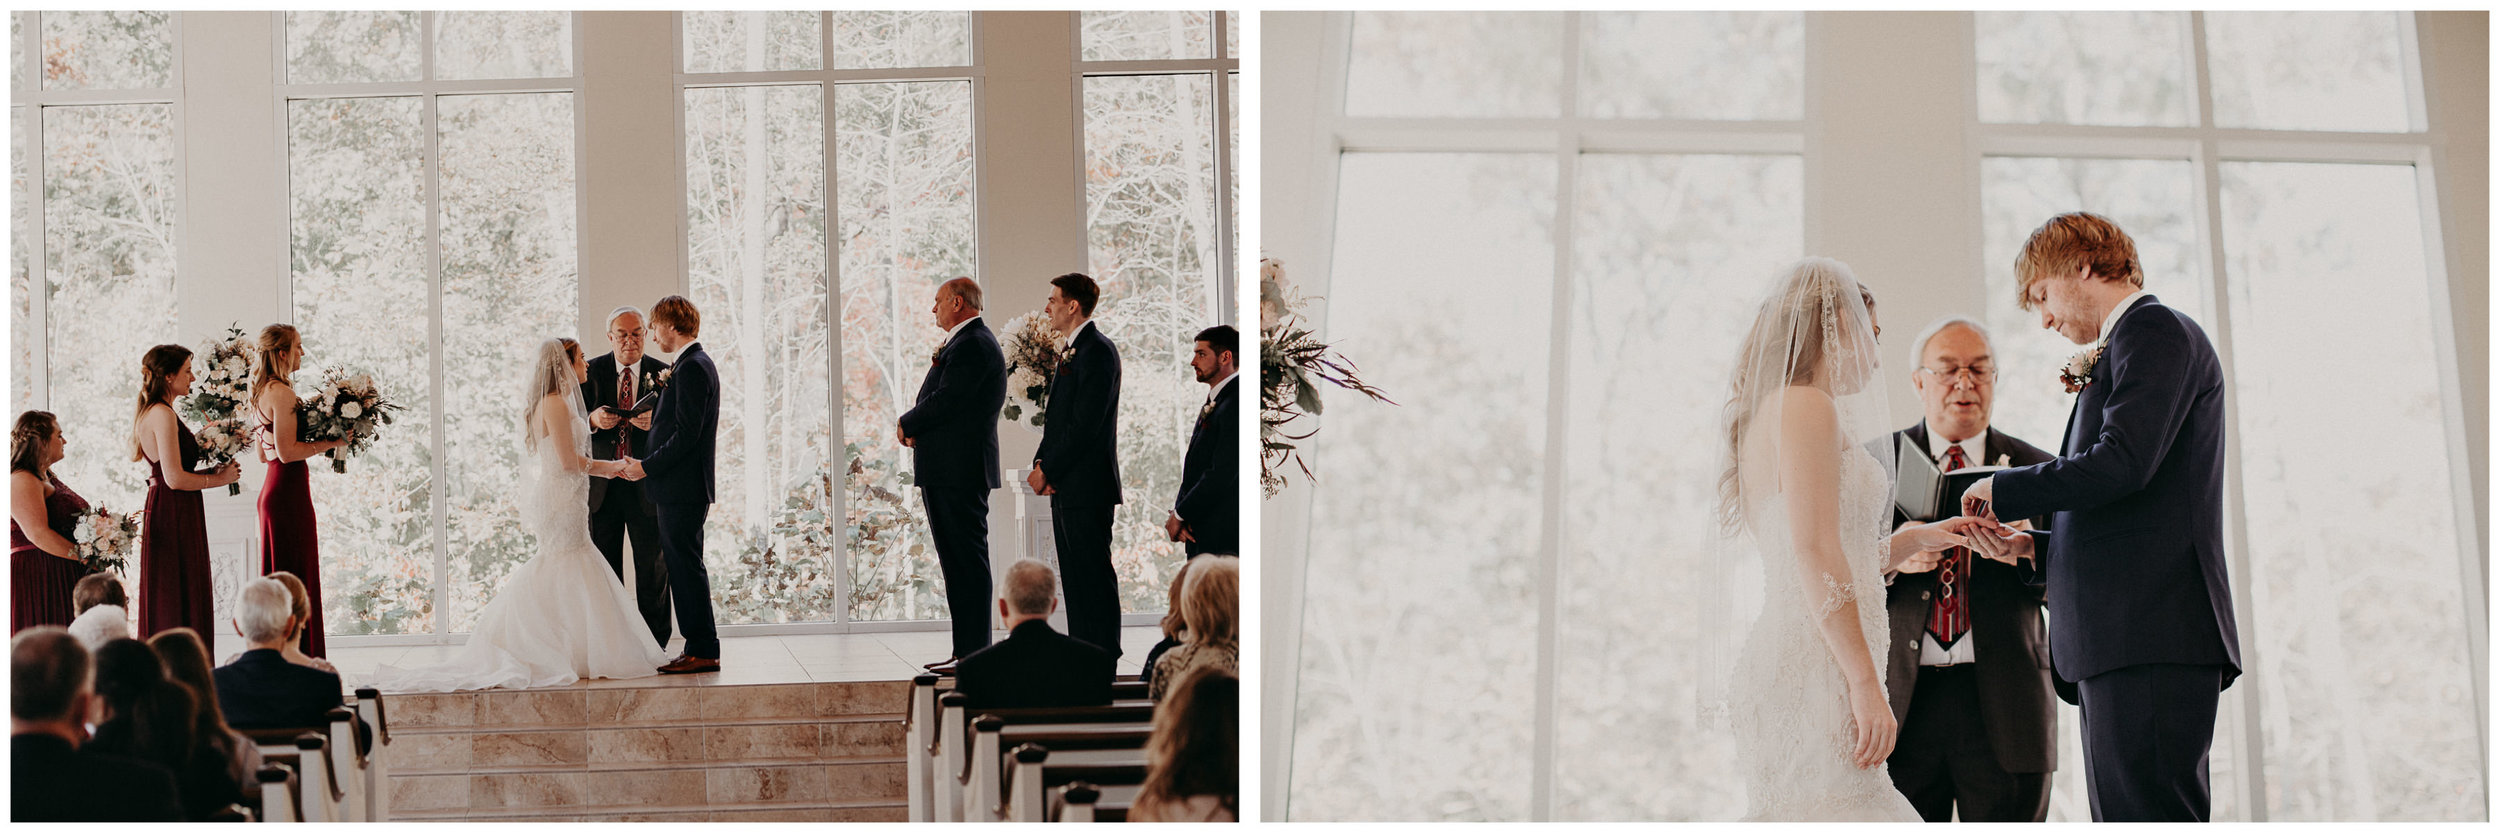 71 - Wedding Day Atlanta Photographer : Getting Ready, Ceremony, Reception, Bride and Groom, Wedding Party. .jpg